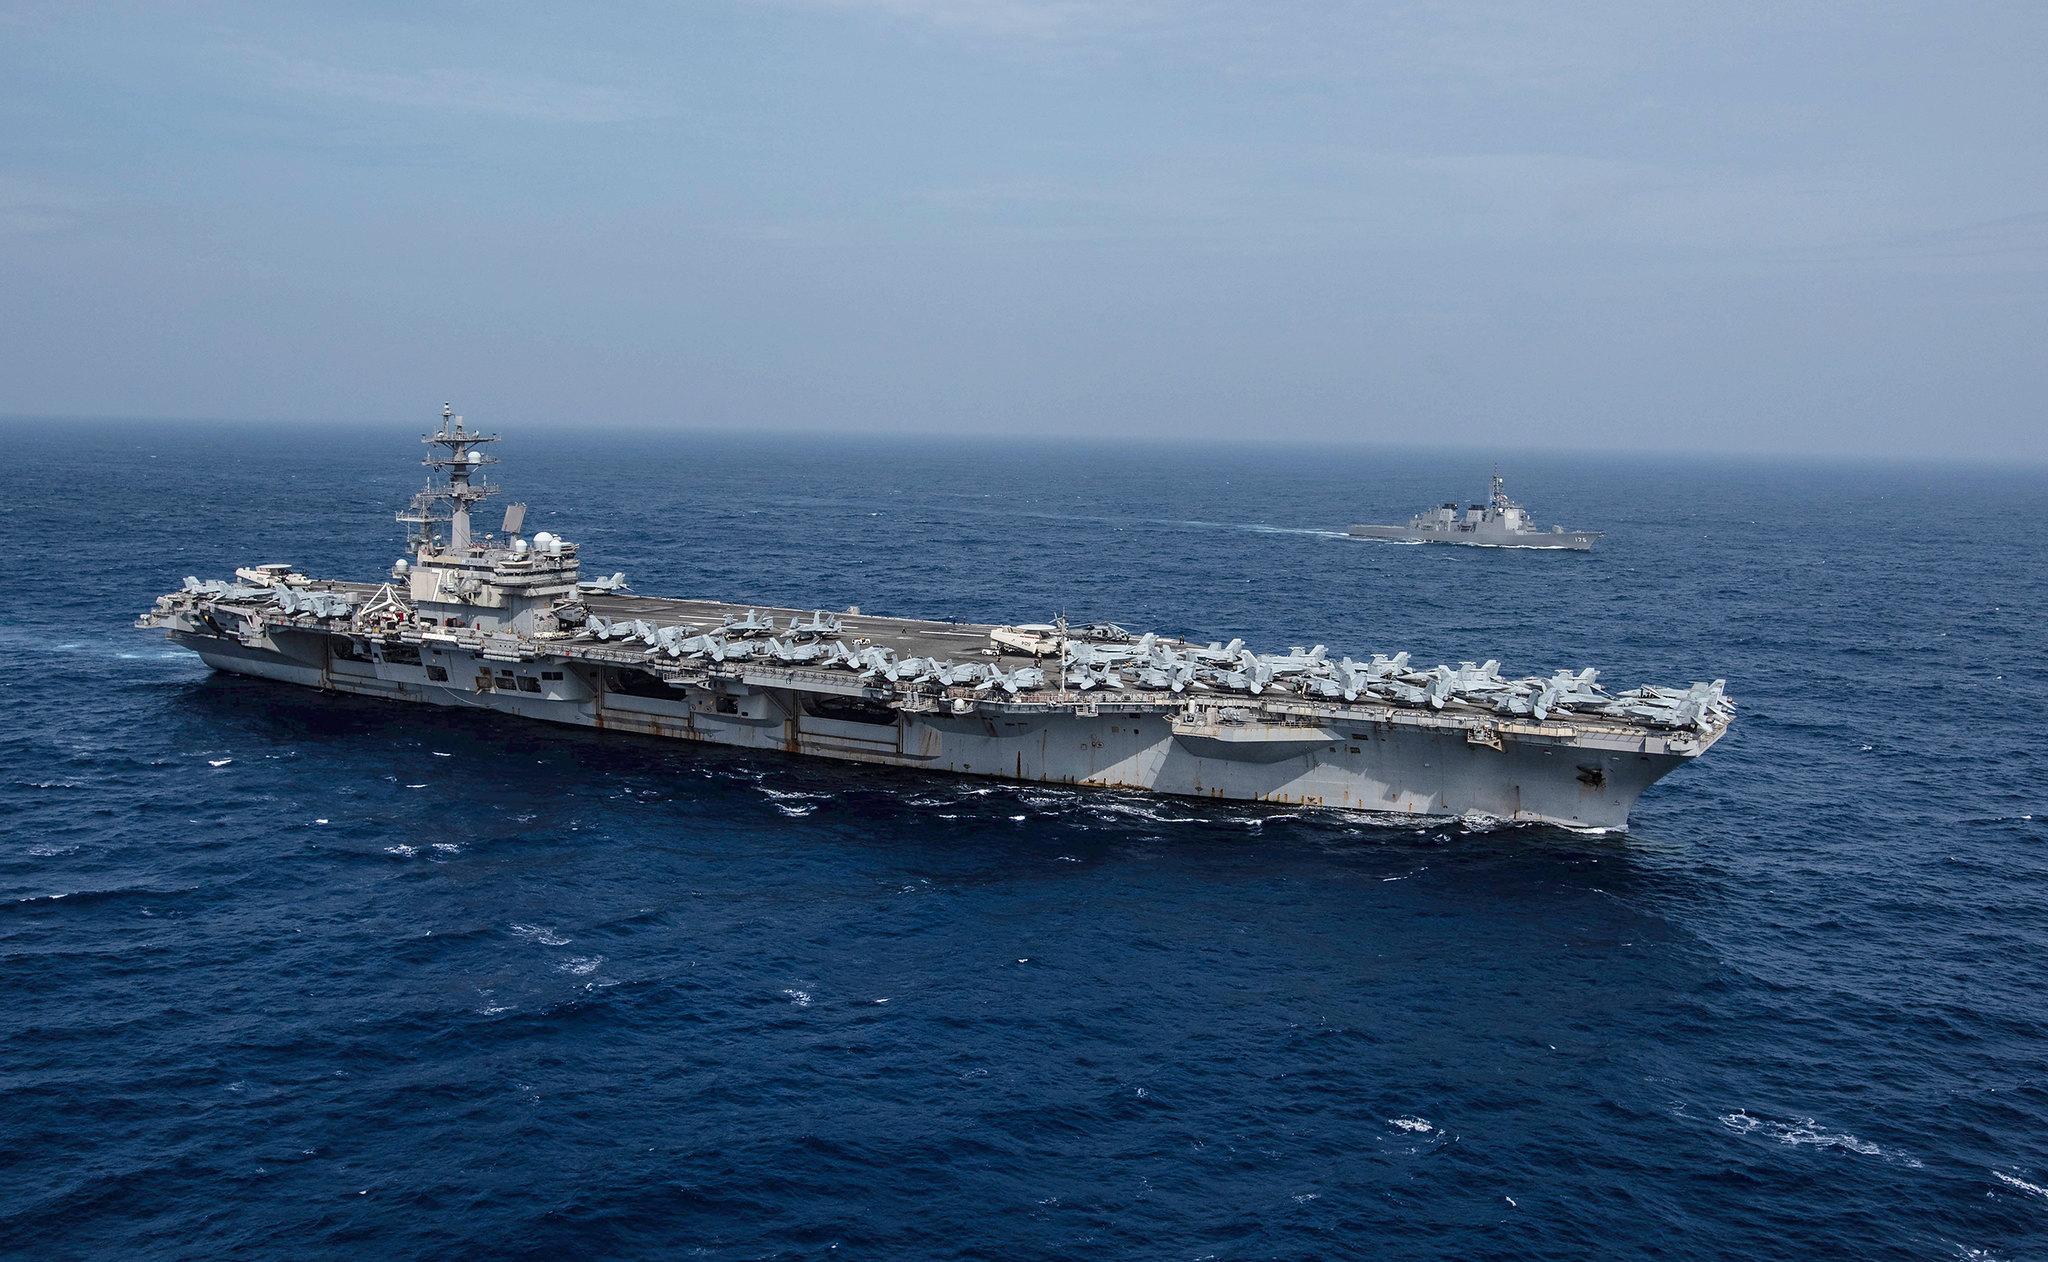 The Navy's forward-deployed aircraft carrier USS Ronald Reagan (CVN 76) sails alongside the Japan Maritime Self-Defense Force (JMSDF) guided-missile destroyer JS Myoko (DDG-175) on Aug. 15, 2019, while underway in the Philippine Sea. (Mass Communication Specialist 2nd Class Kaila V. Peters/Navy)